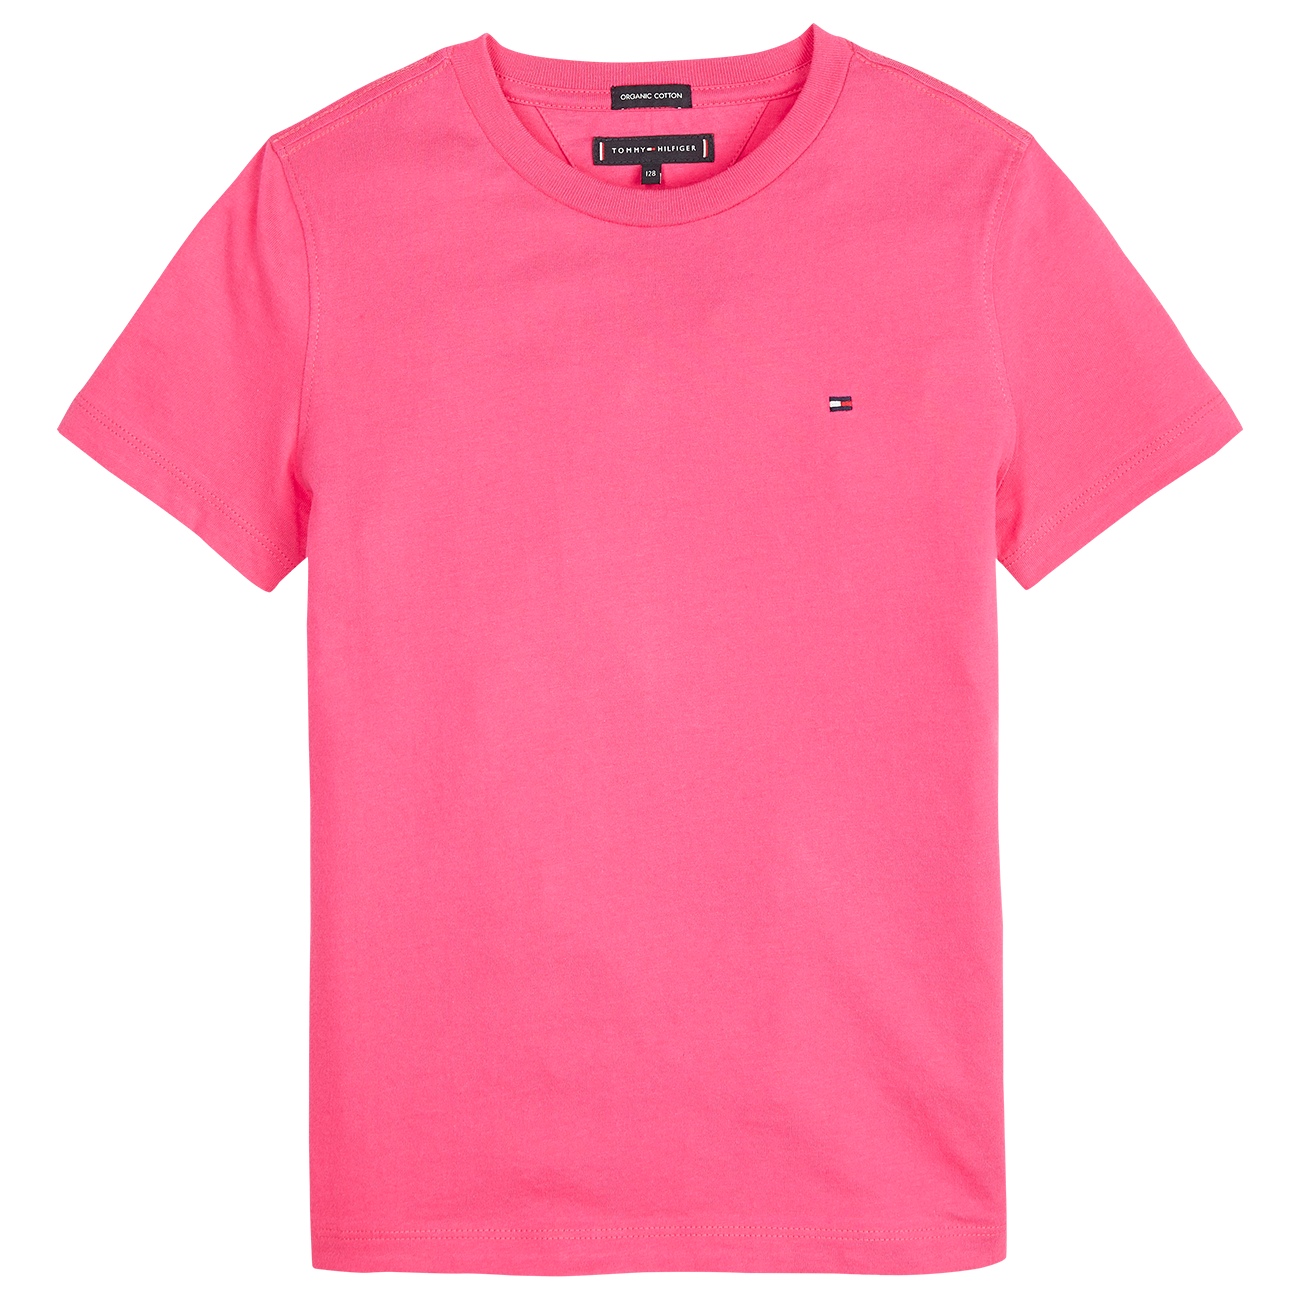 Tommy Hilfiger Boys Essential Tee S//S T-Shirt